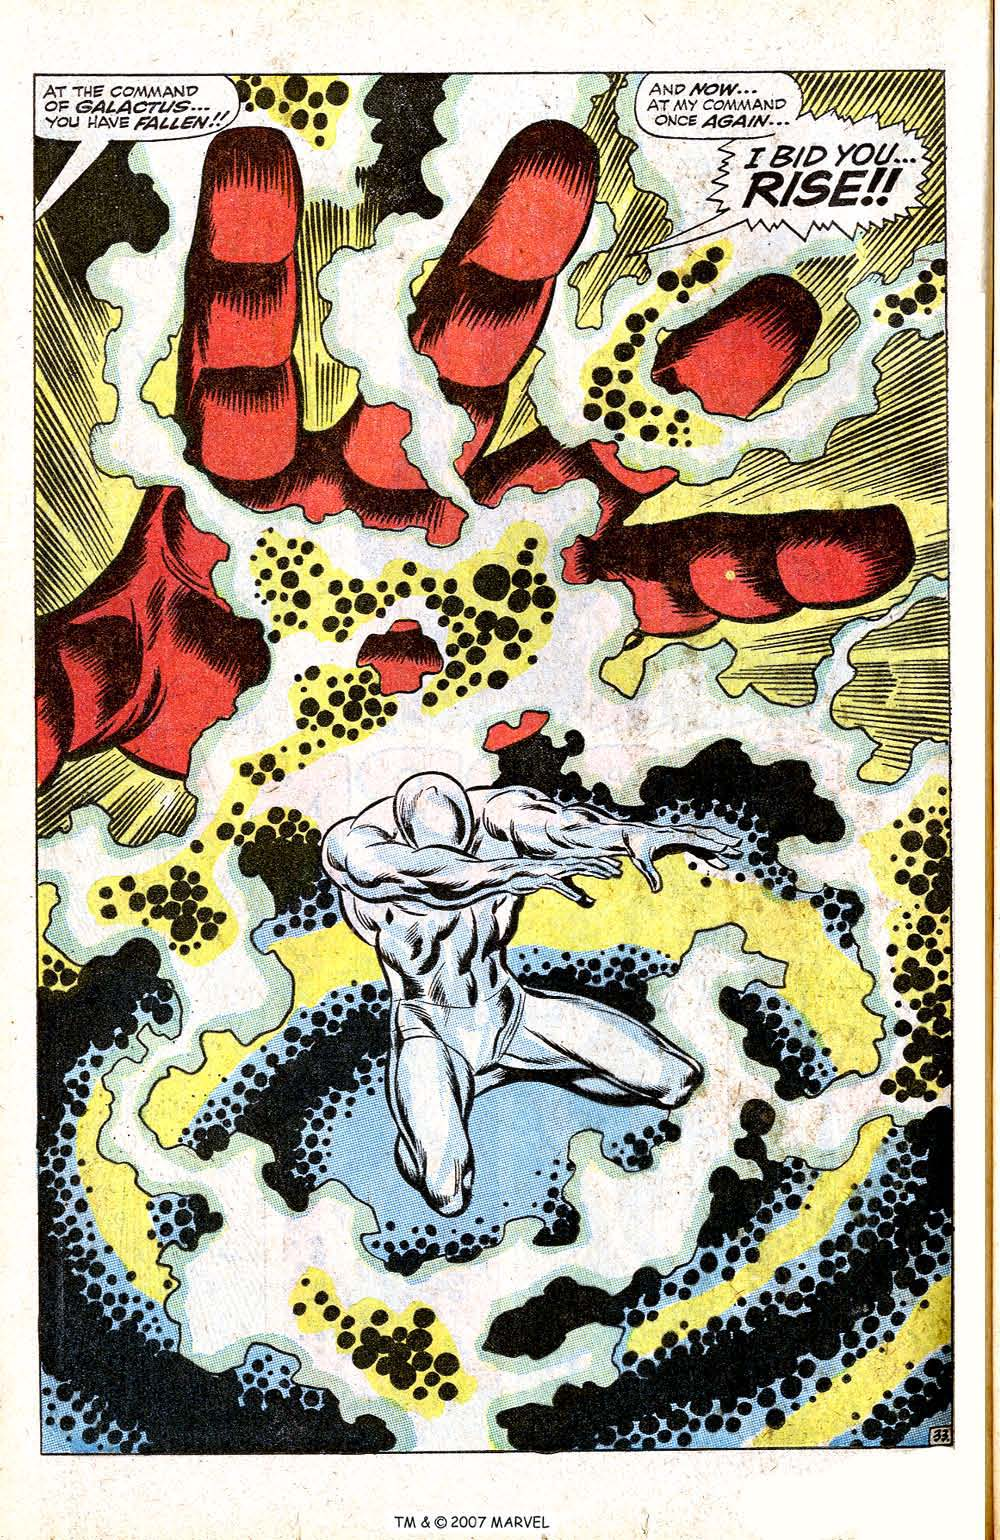 In 'Silver Surfer' (1968) #1, In a desperate attempt to save his planet from destruction at the awesome power of Galactus, Norrin Radd swore to become the Silver Surfer.